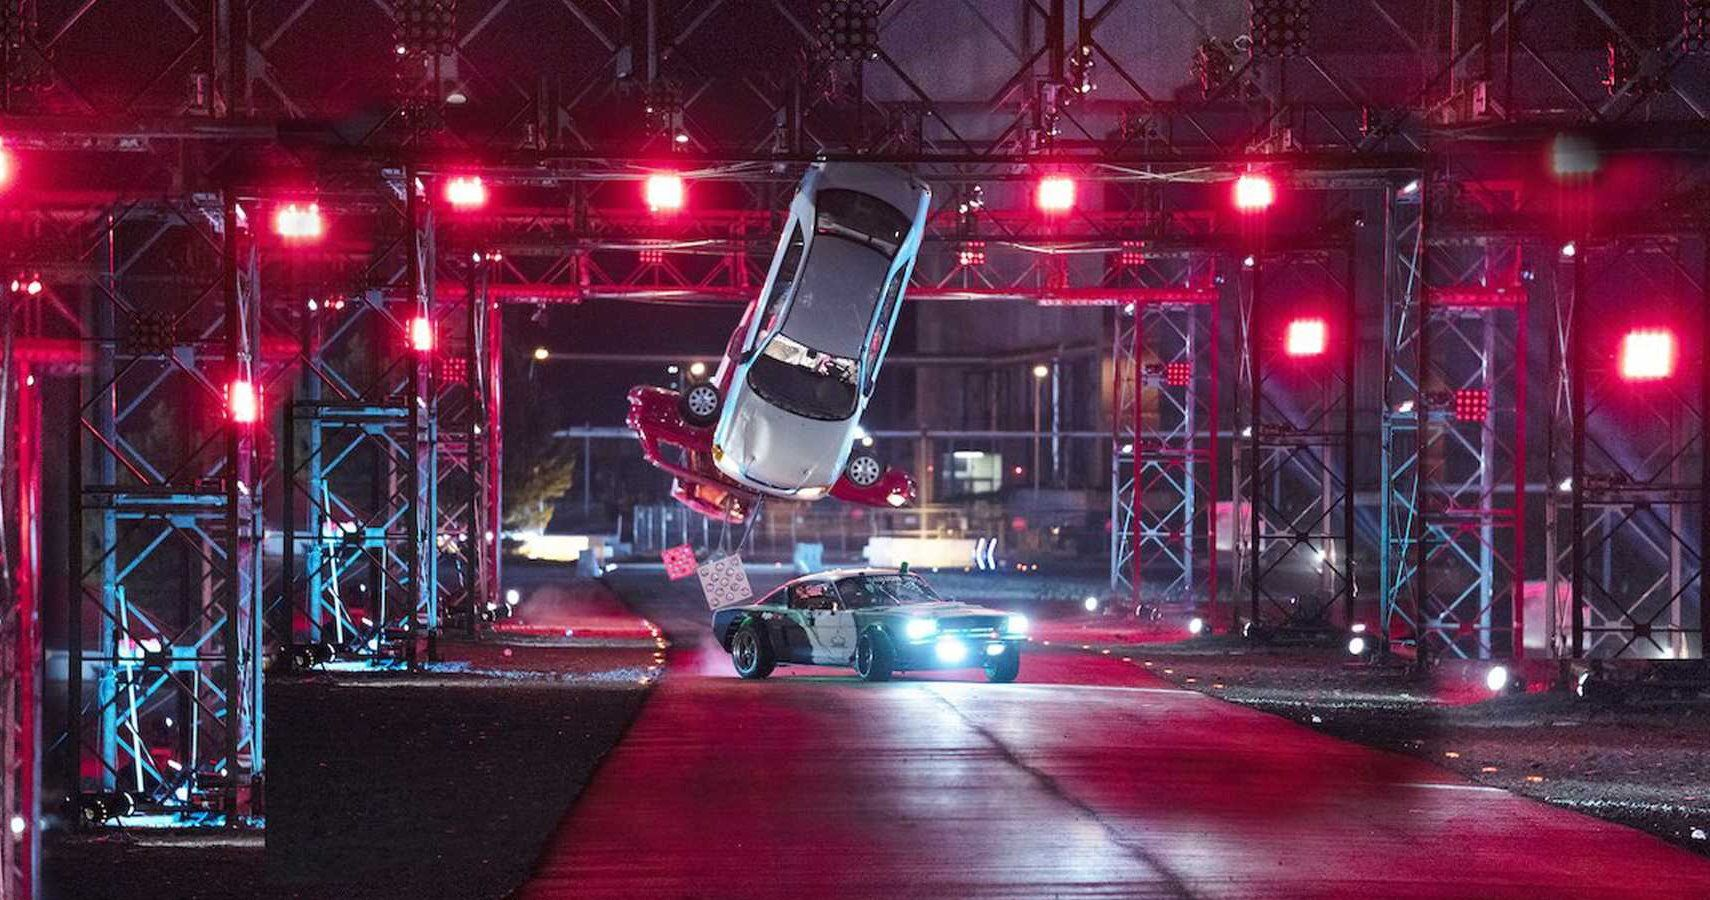 New Netflix Series Hyperdrive Crosses Fast & The Furious With